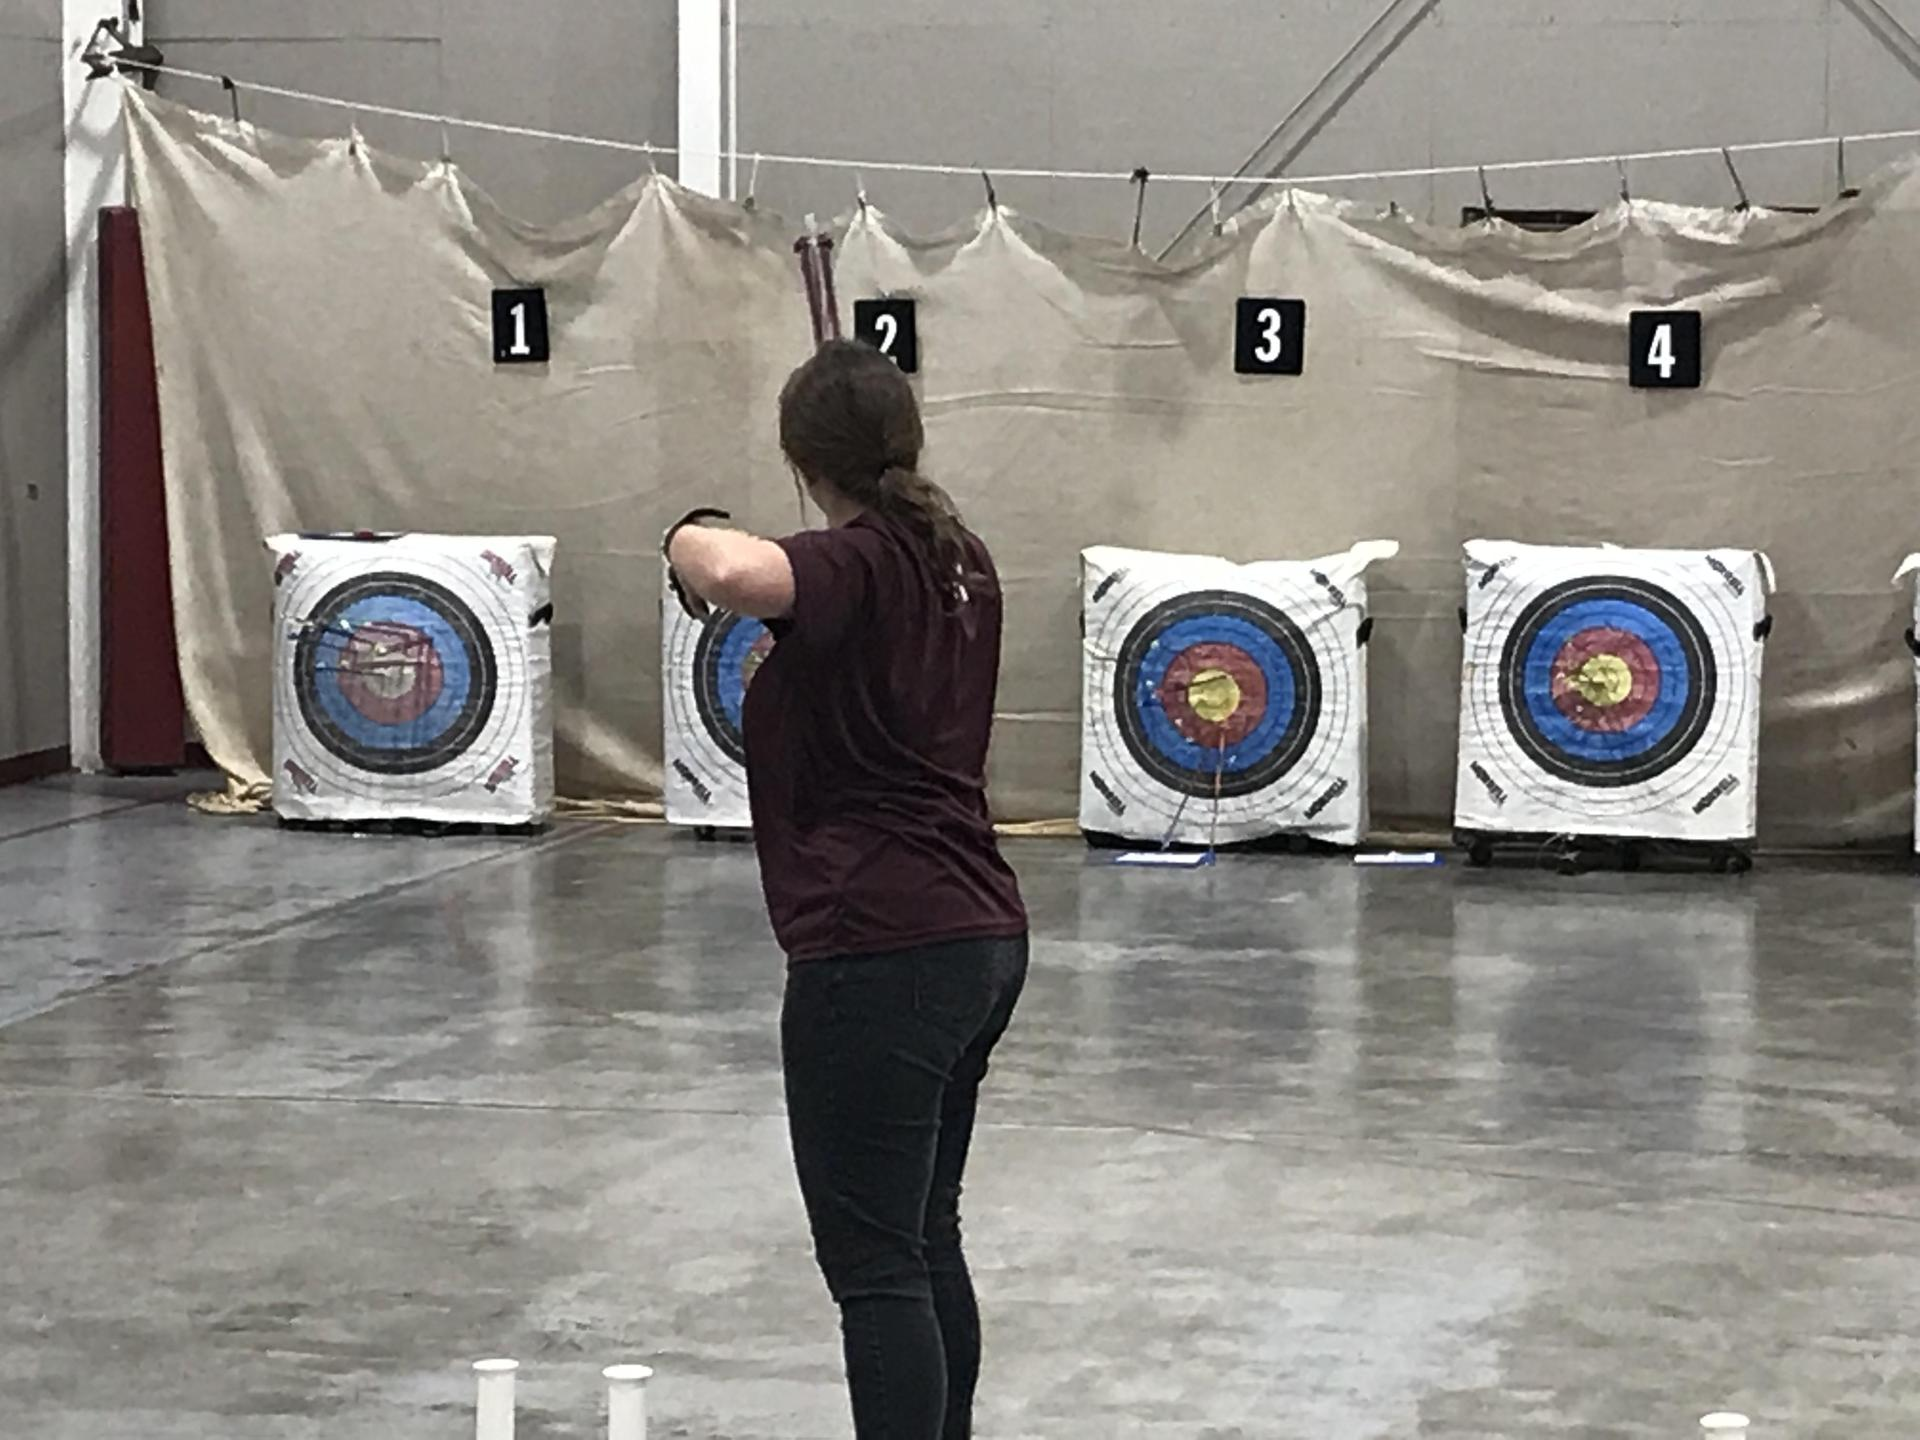 Clarkdale archery athlete competing.